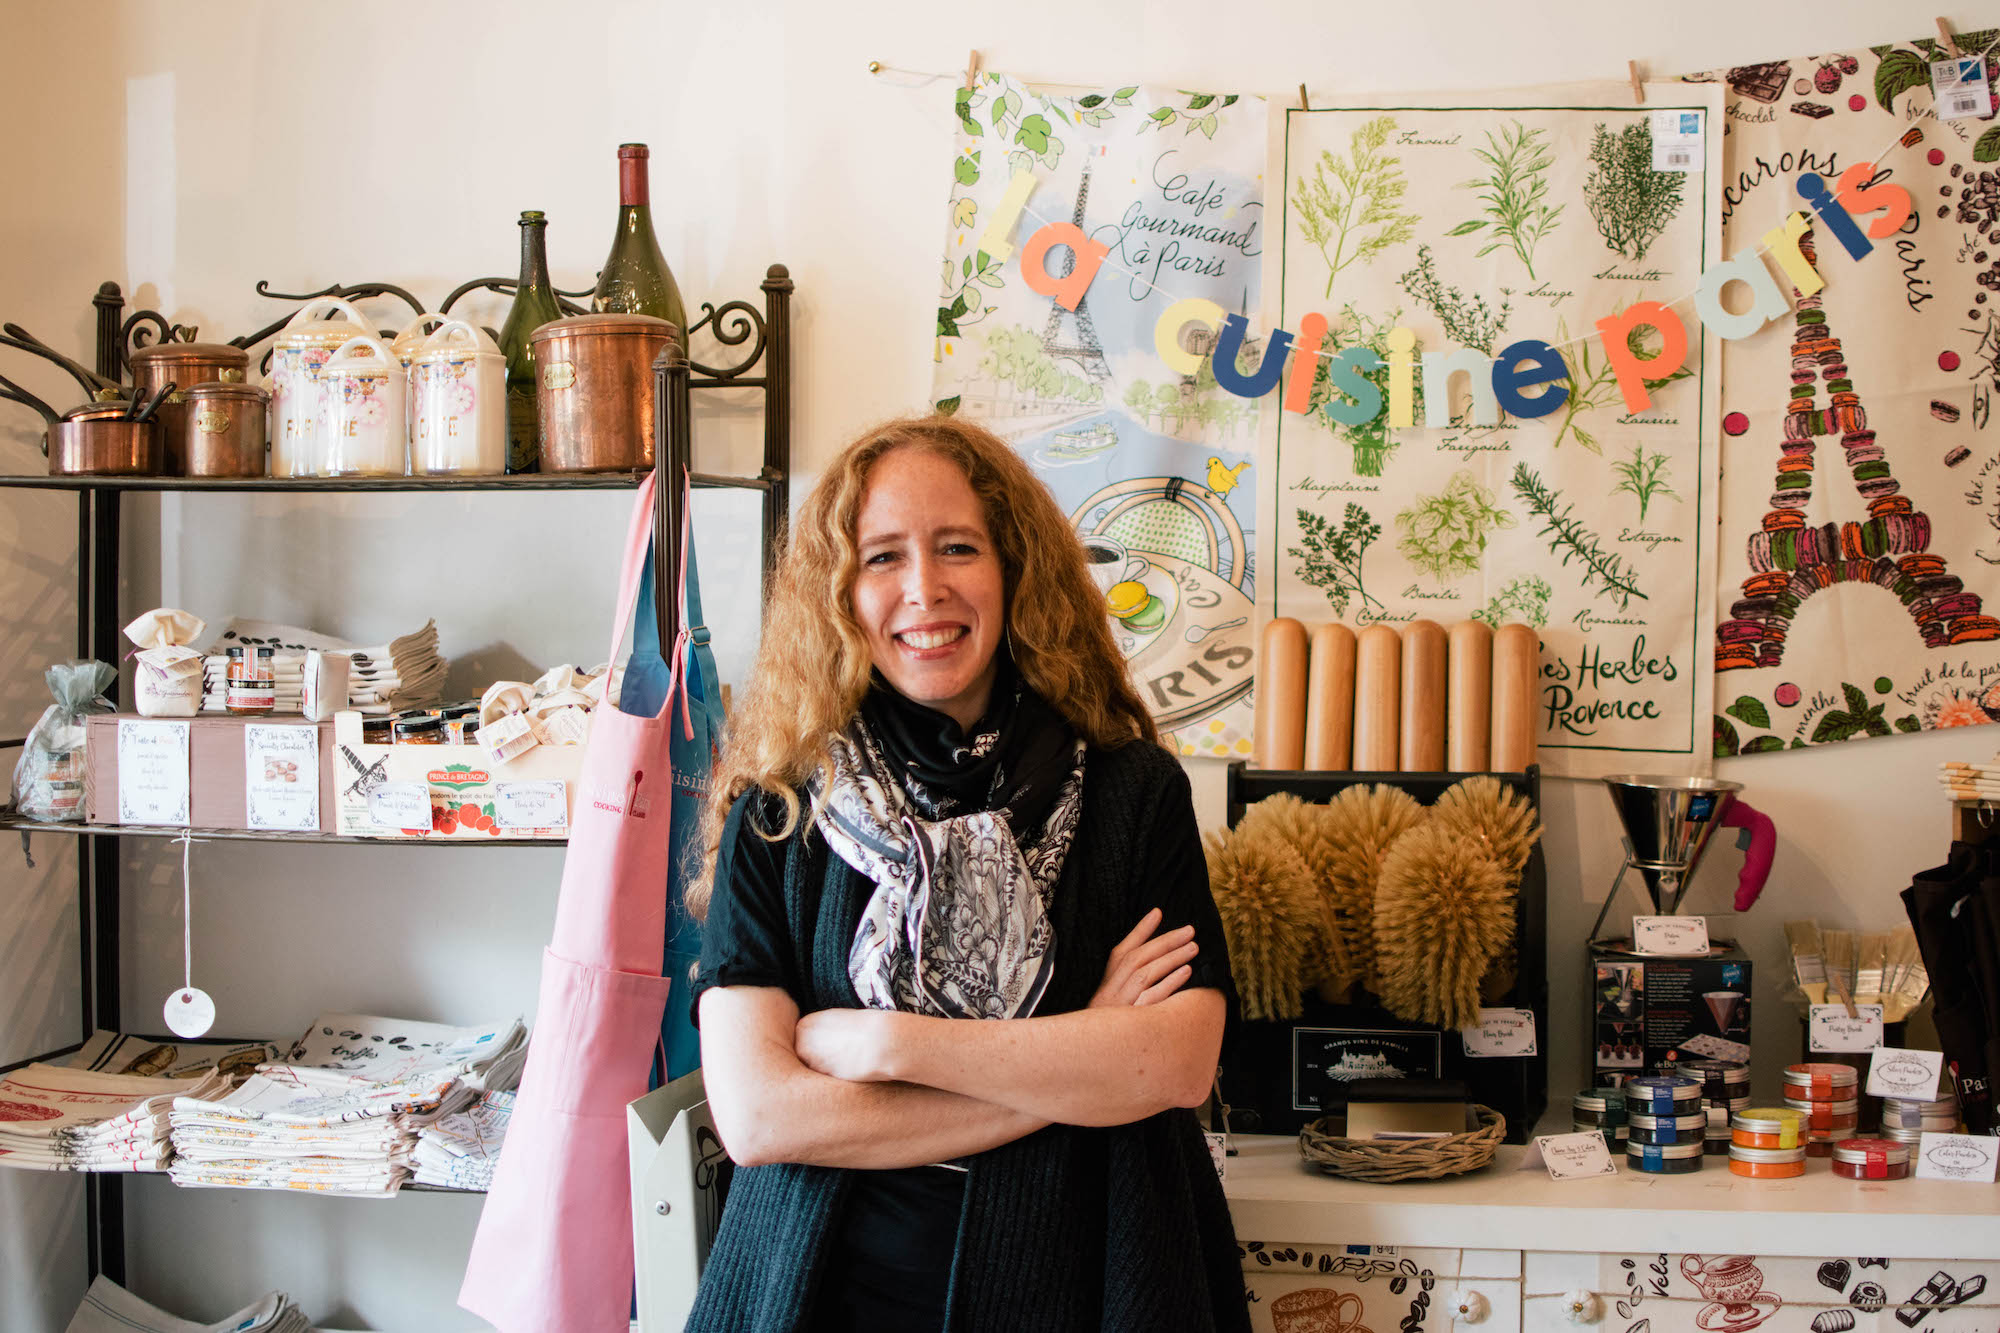 Jane Bertch, founder of La Cuisine Paris cooking school by the Seine River, smiles in the kitchen, which is flooded with light and filled with odds and ends: neatly folded tea towels; copper jars; and fun French food pictures depicting the Eiffel Tower, the herbs of Provence, and a bistro.